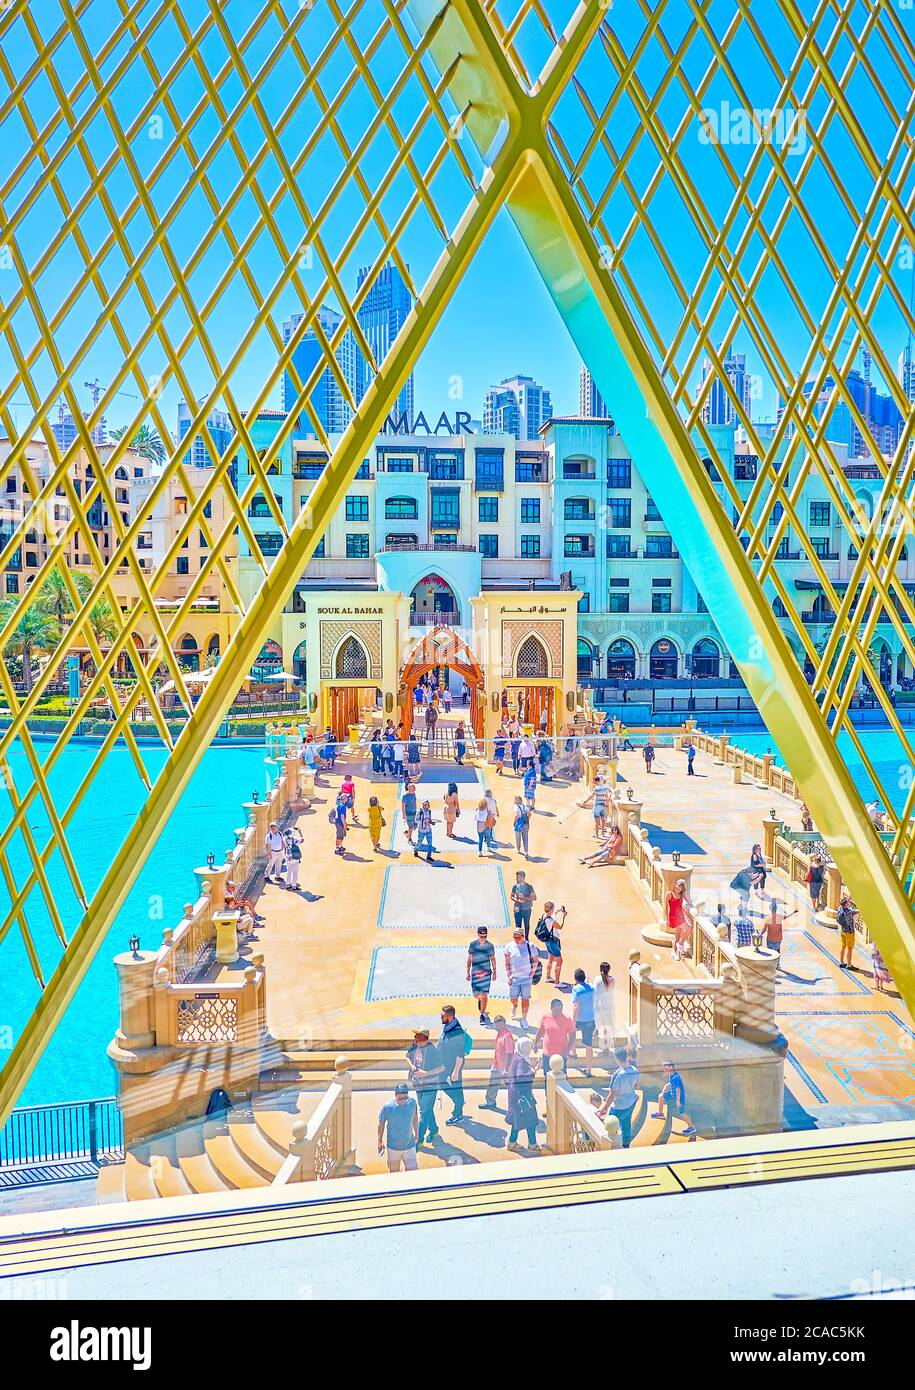 DUBAI, UAE - MARCH 3, 2020: The view from the balcony through the metal facade decorations of Dubai Mall on the amazing Al Bahar Souq and bridge in Ar Stock Photo